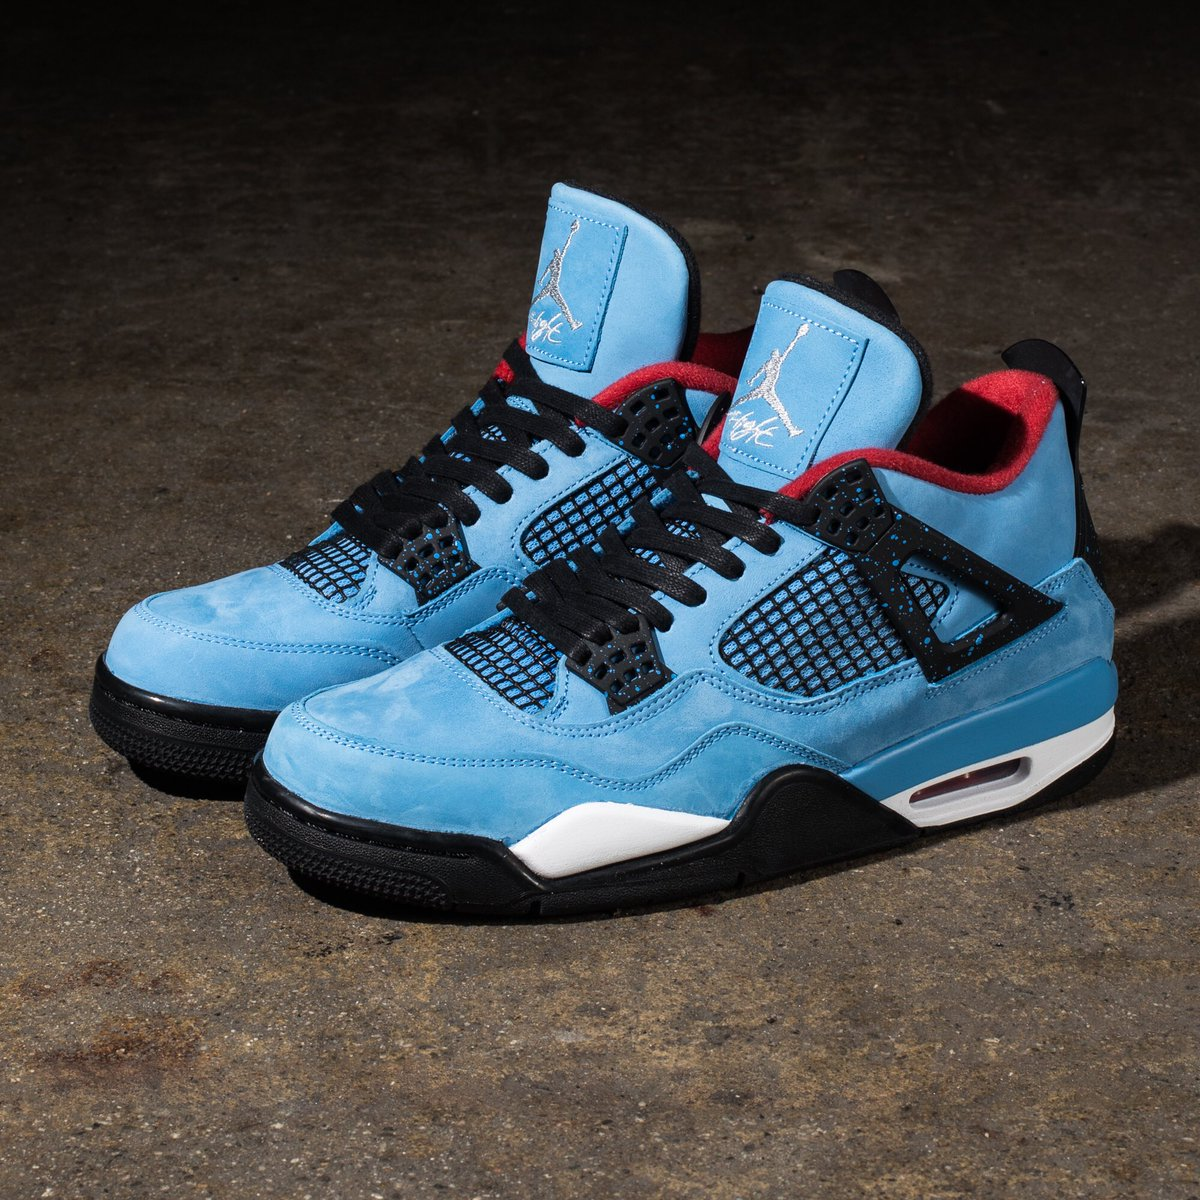 "765f3a47dbcce1 See the Travis Scott x Air Jordan IV ""Cactus Jack"" Raffle Information on  our Instagram now https   instagram.com p BjiWfzhHd9K   pic.twitter.com 2FIAgWcFh5"